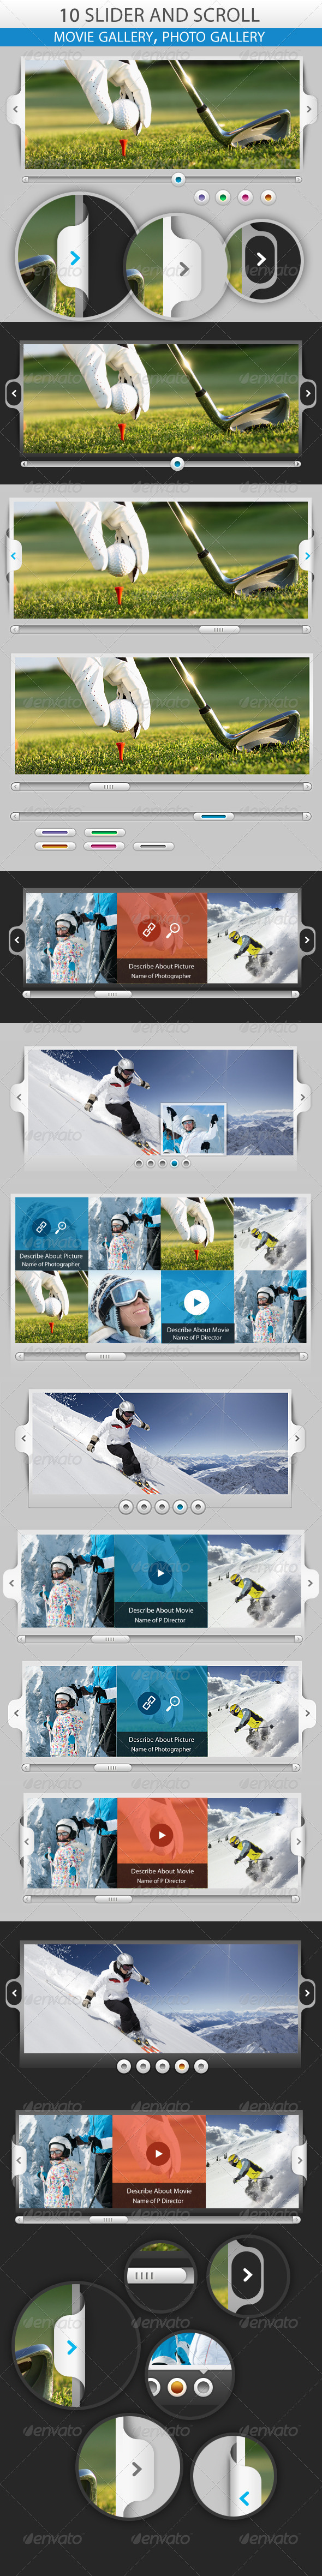 GraphicRiver Slider and Scroll 10 Creative 5116408